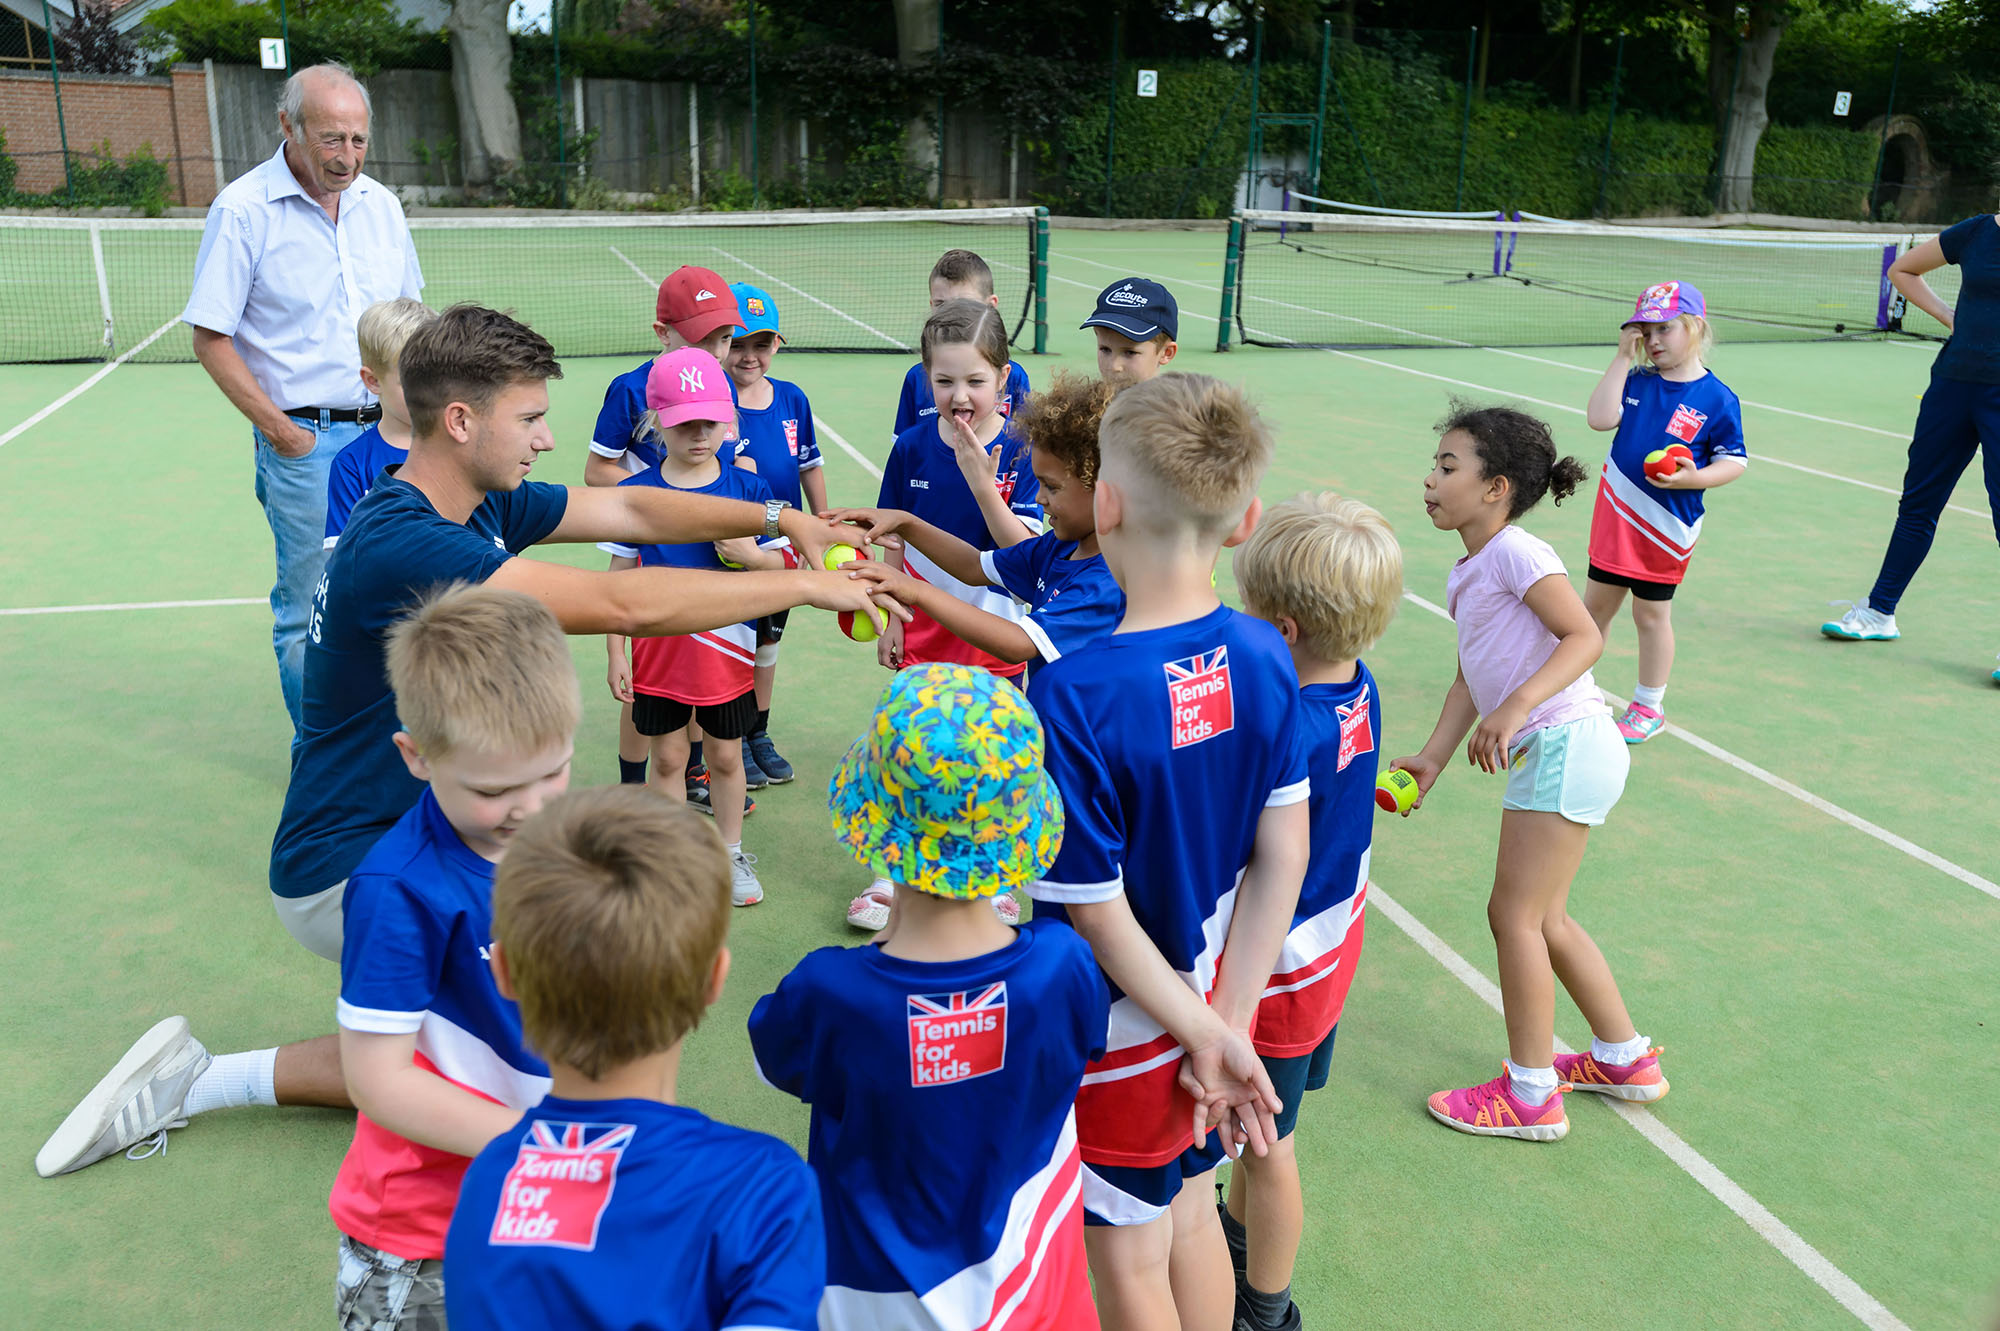 A coach demonstrates a coordination drill at a mini-tennis session